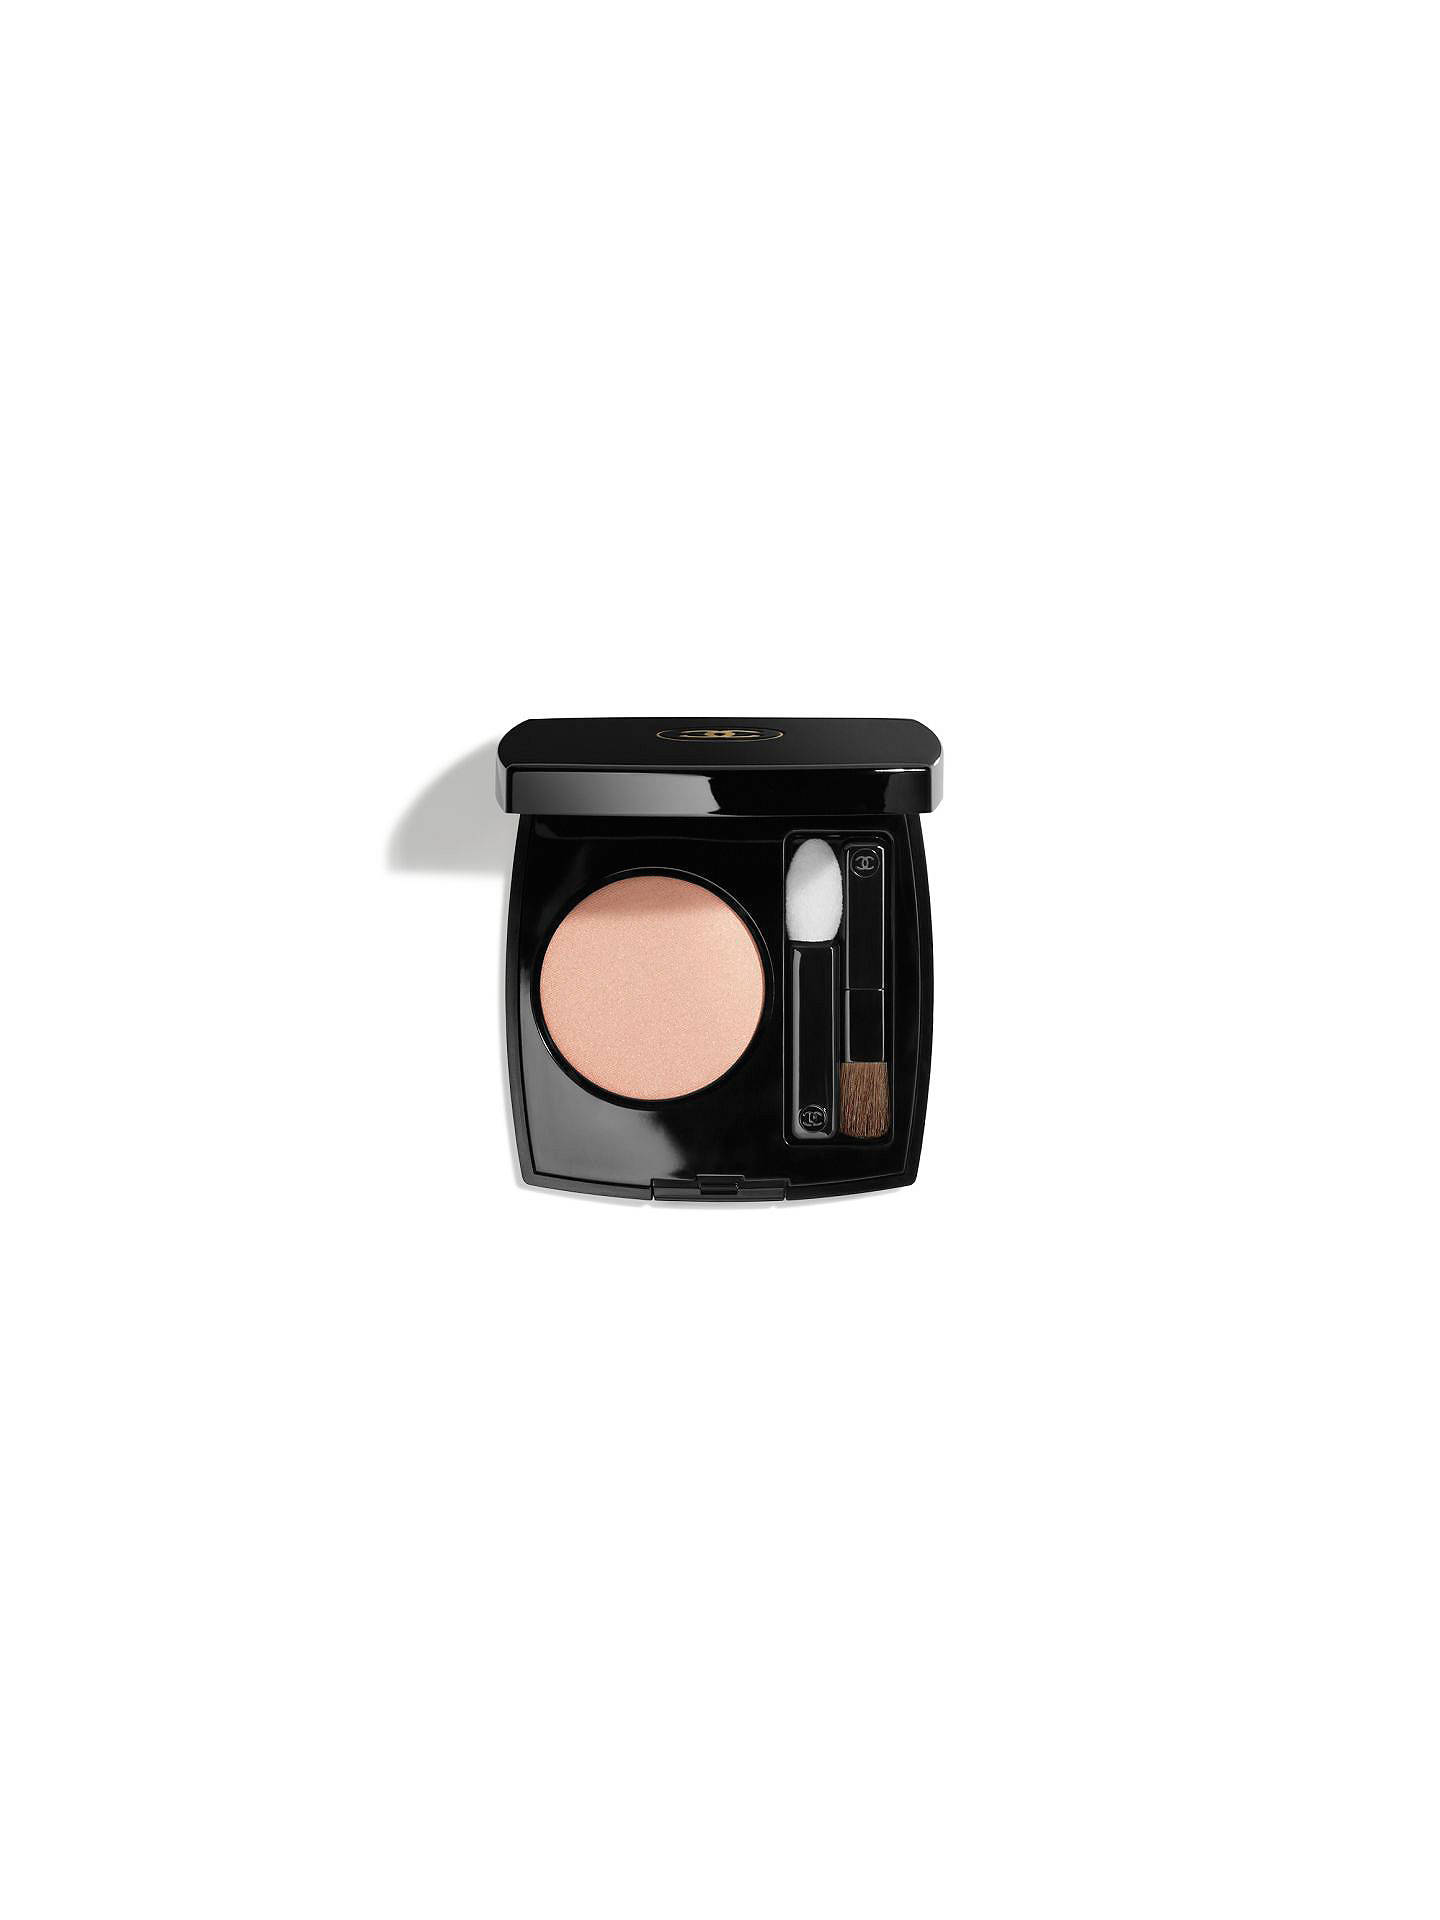 Buy CHANEL OMBRE PREMIÈRE Longwear Powder Eyeshadow, 10 Flesh Online at johnlewis.com